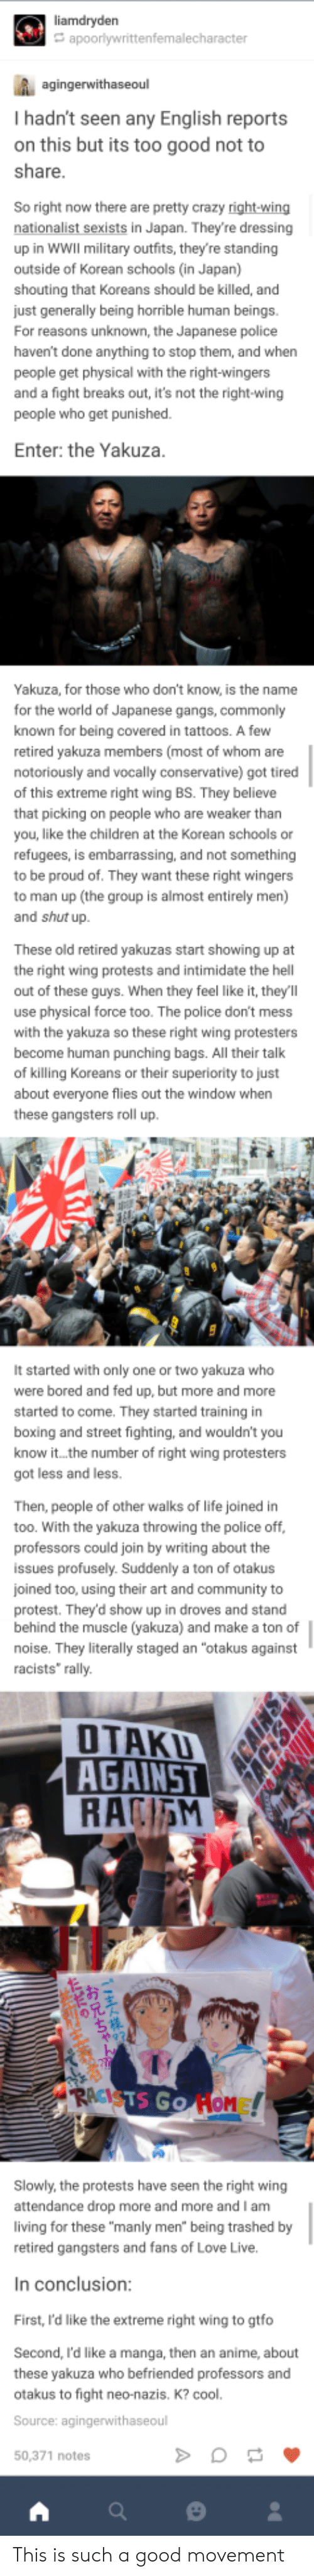 Anime, Bored, and Boxing: I hadn't seen any English reports  on this but its too good not to  So right now there are pretty crazy right-wing  nationalist sexists in Japan. They're dressing  up in WWIl military outfits, they're standing  outside of Korean schools (in Japan)  shouting that Koreans should be killed, and  just generally being horrible human beings.  For reasons unknown, the Japanese police  haven't done anything to stop them, and when  people get physical with the right-wingers  and a fight breaks out, it's not the right-wing  people who get punished.  Enter: the Yakuza  Yakuza, for those who don't know, is the name  for the world of Japanese gangs, commonly  known for being covered in tattoos. A few  retired yakuza members (most of whom are  notoriously and vocally conservative) got tired  of this extreme right wing BS. They believe  that picking on people who are weaker than  you, like the children at the Korean schools or  refugees, is embarrassing, and not something  to be proud of. They want these right wingers  to man up (the group is almost entirely men)  These old retired yakuzas start showing up at  the right wing protests and intimidate the hell  out of these guys. When they feel like it, they'll  use physical force too. The police don't mess  with the yakuza so these right wing protesters  become human punching bags. All their talk  of killing Koreans or their superiority to just  about everyone flies out the window when  these gangsters roll up.  It started with only one or two yakuza who  were bored and fed up, but more and more  started to come. They started training in  boxing and street fighting, and wouldn't you  know it... the number of right wing protesters  got less and less.  Then, people of other walks of life joined in  too. With the yakuza throwing the police off  professors could join by writing about the  issues profusely. Suddenly a ton of otakus  joined too, using their art and community to  protest. They'd show up in droves 